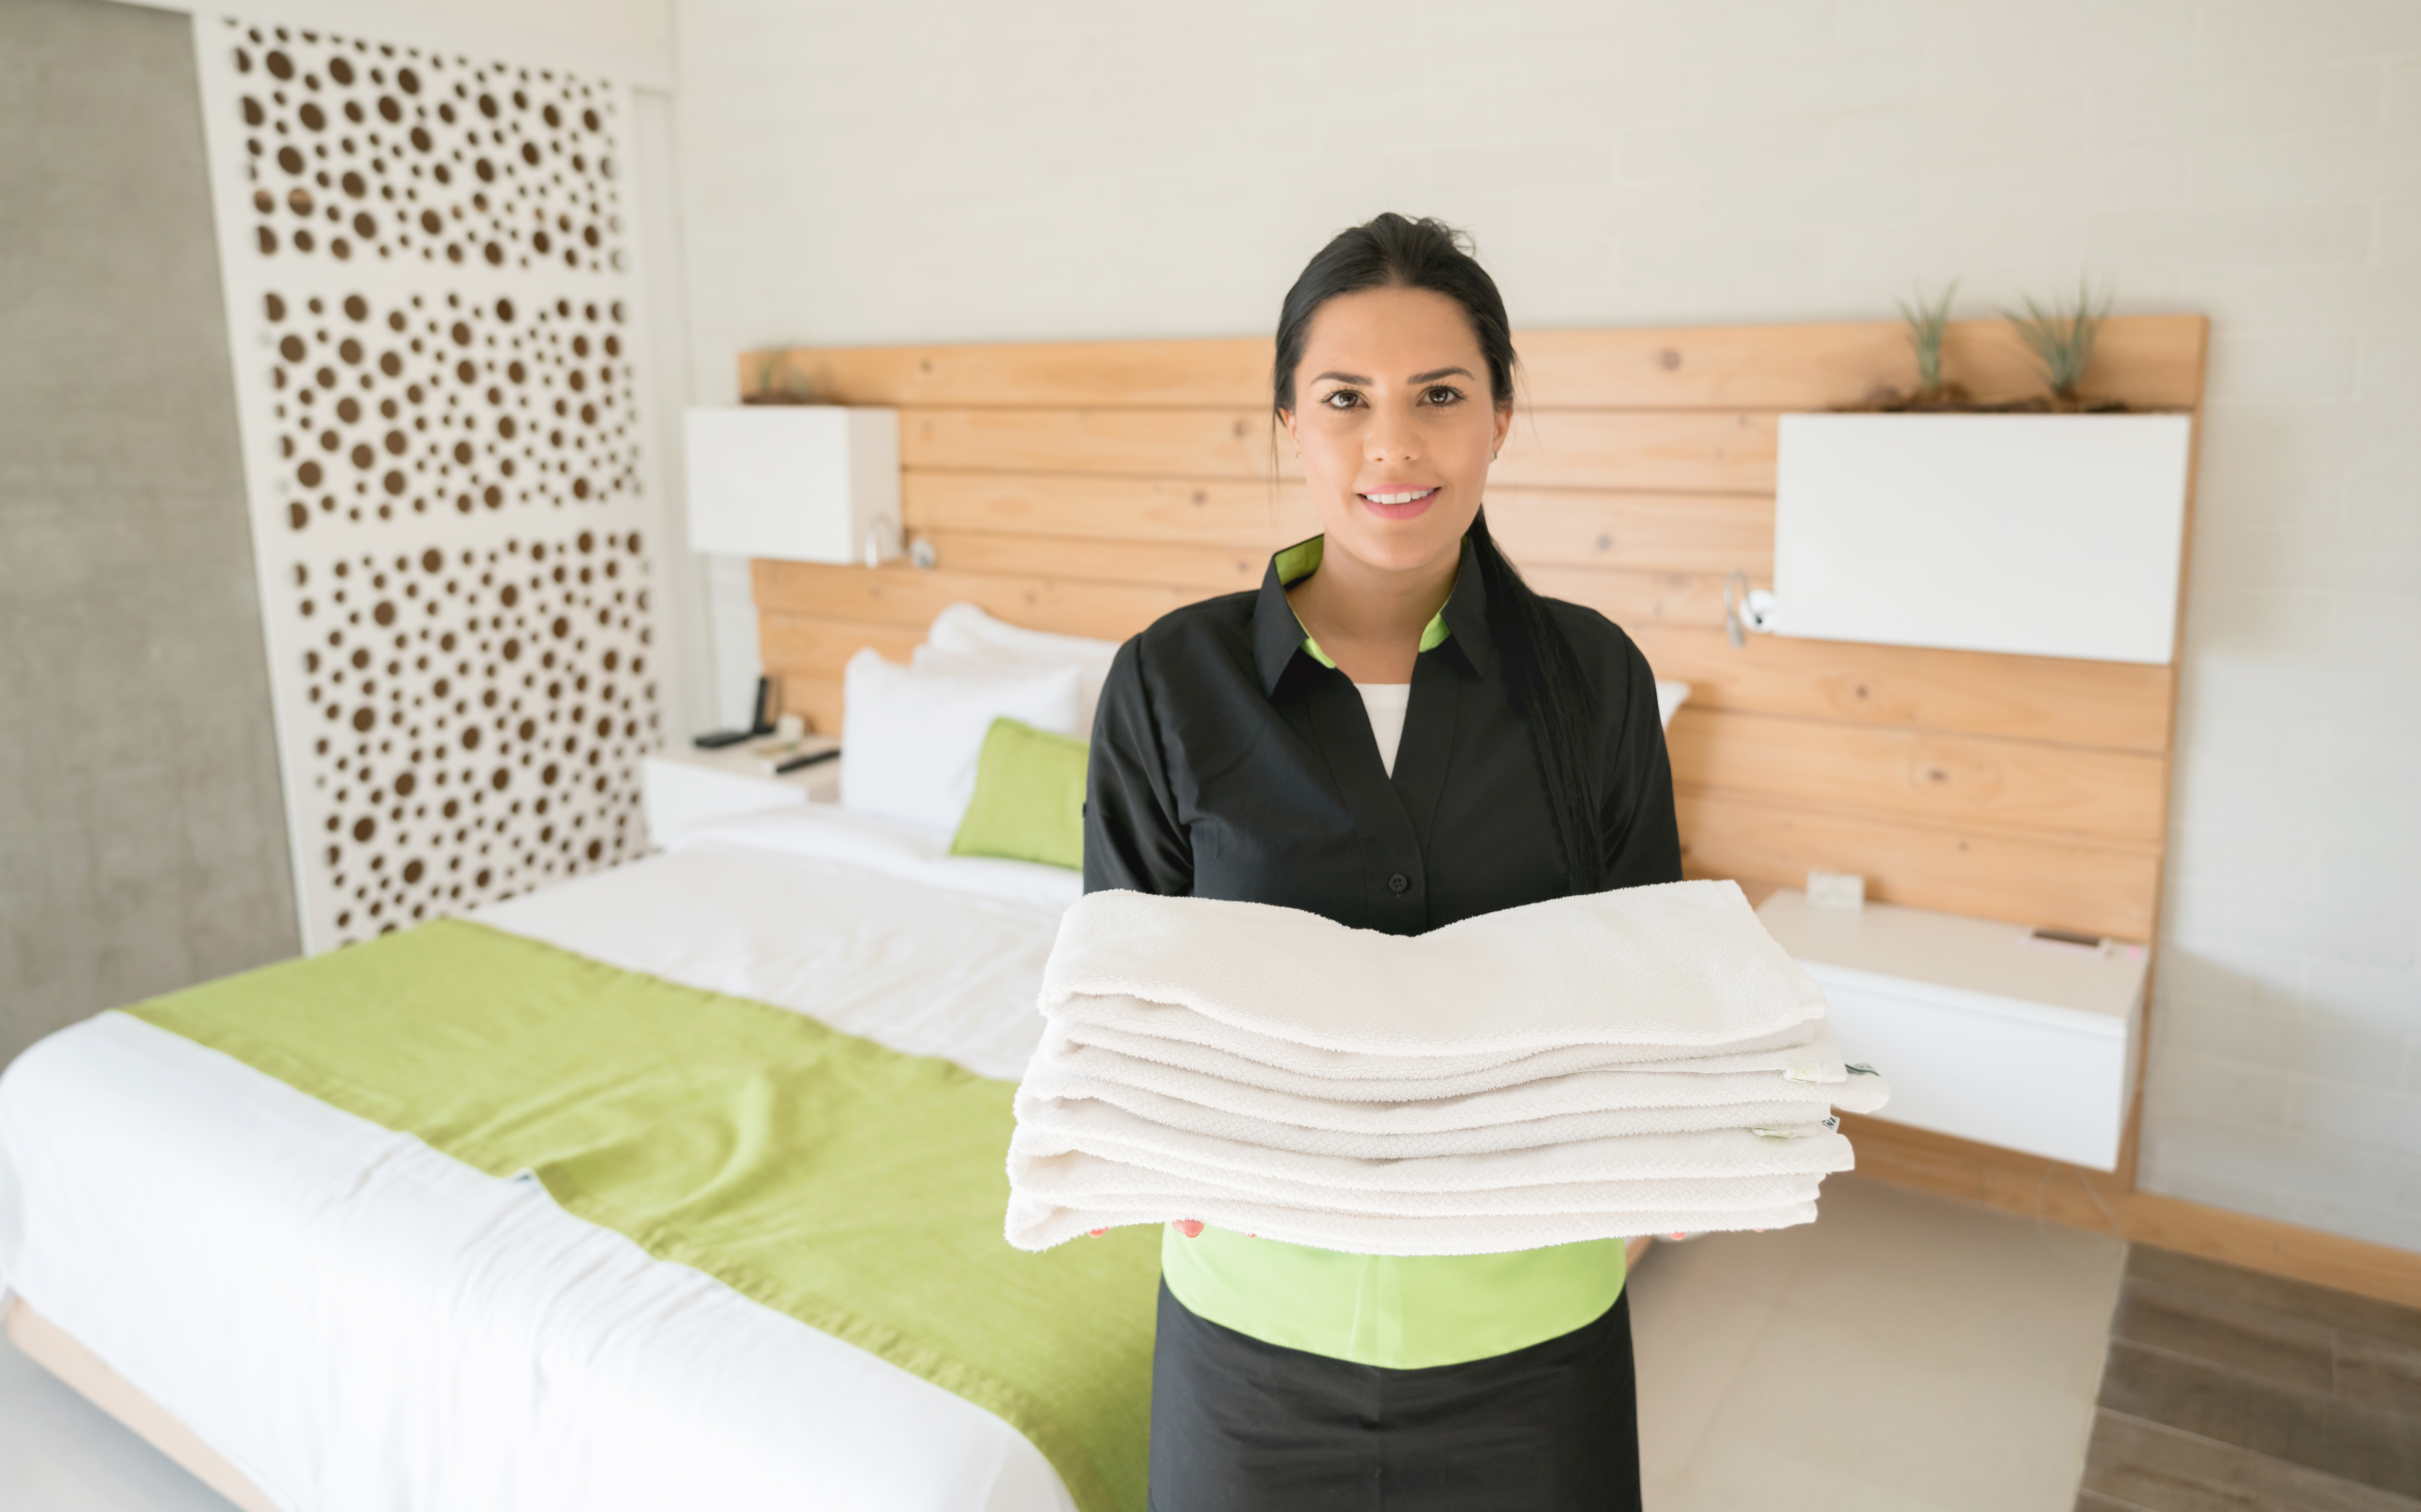 Housekeeping Department Duties | Chron com